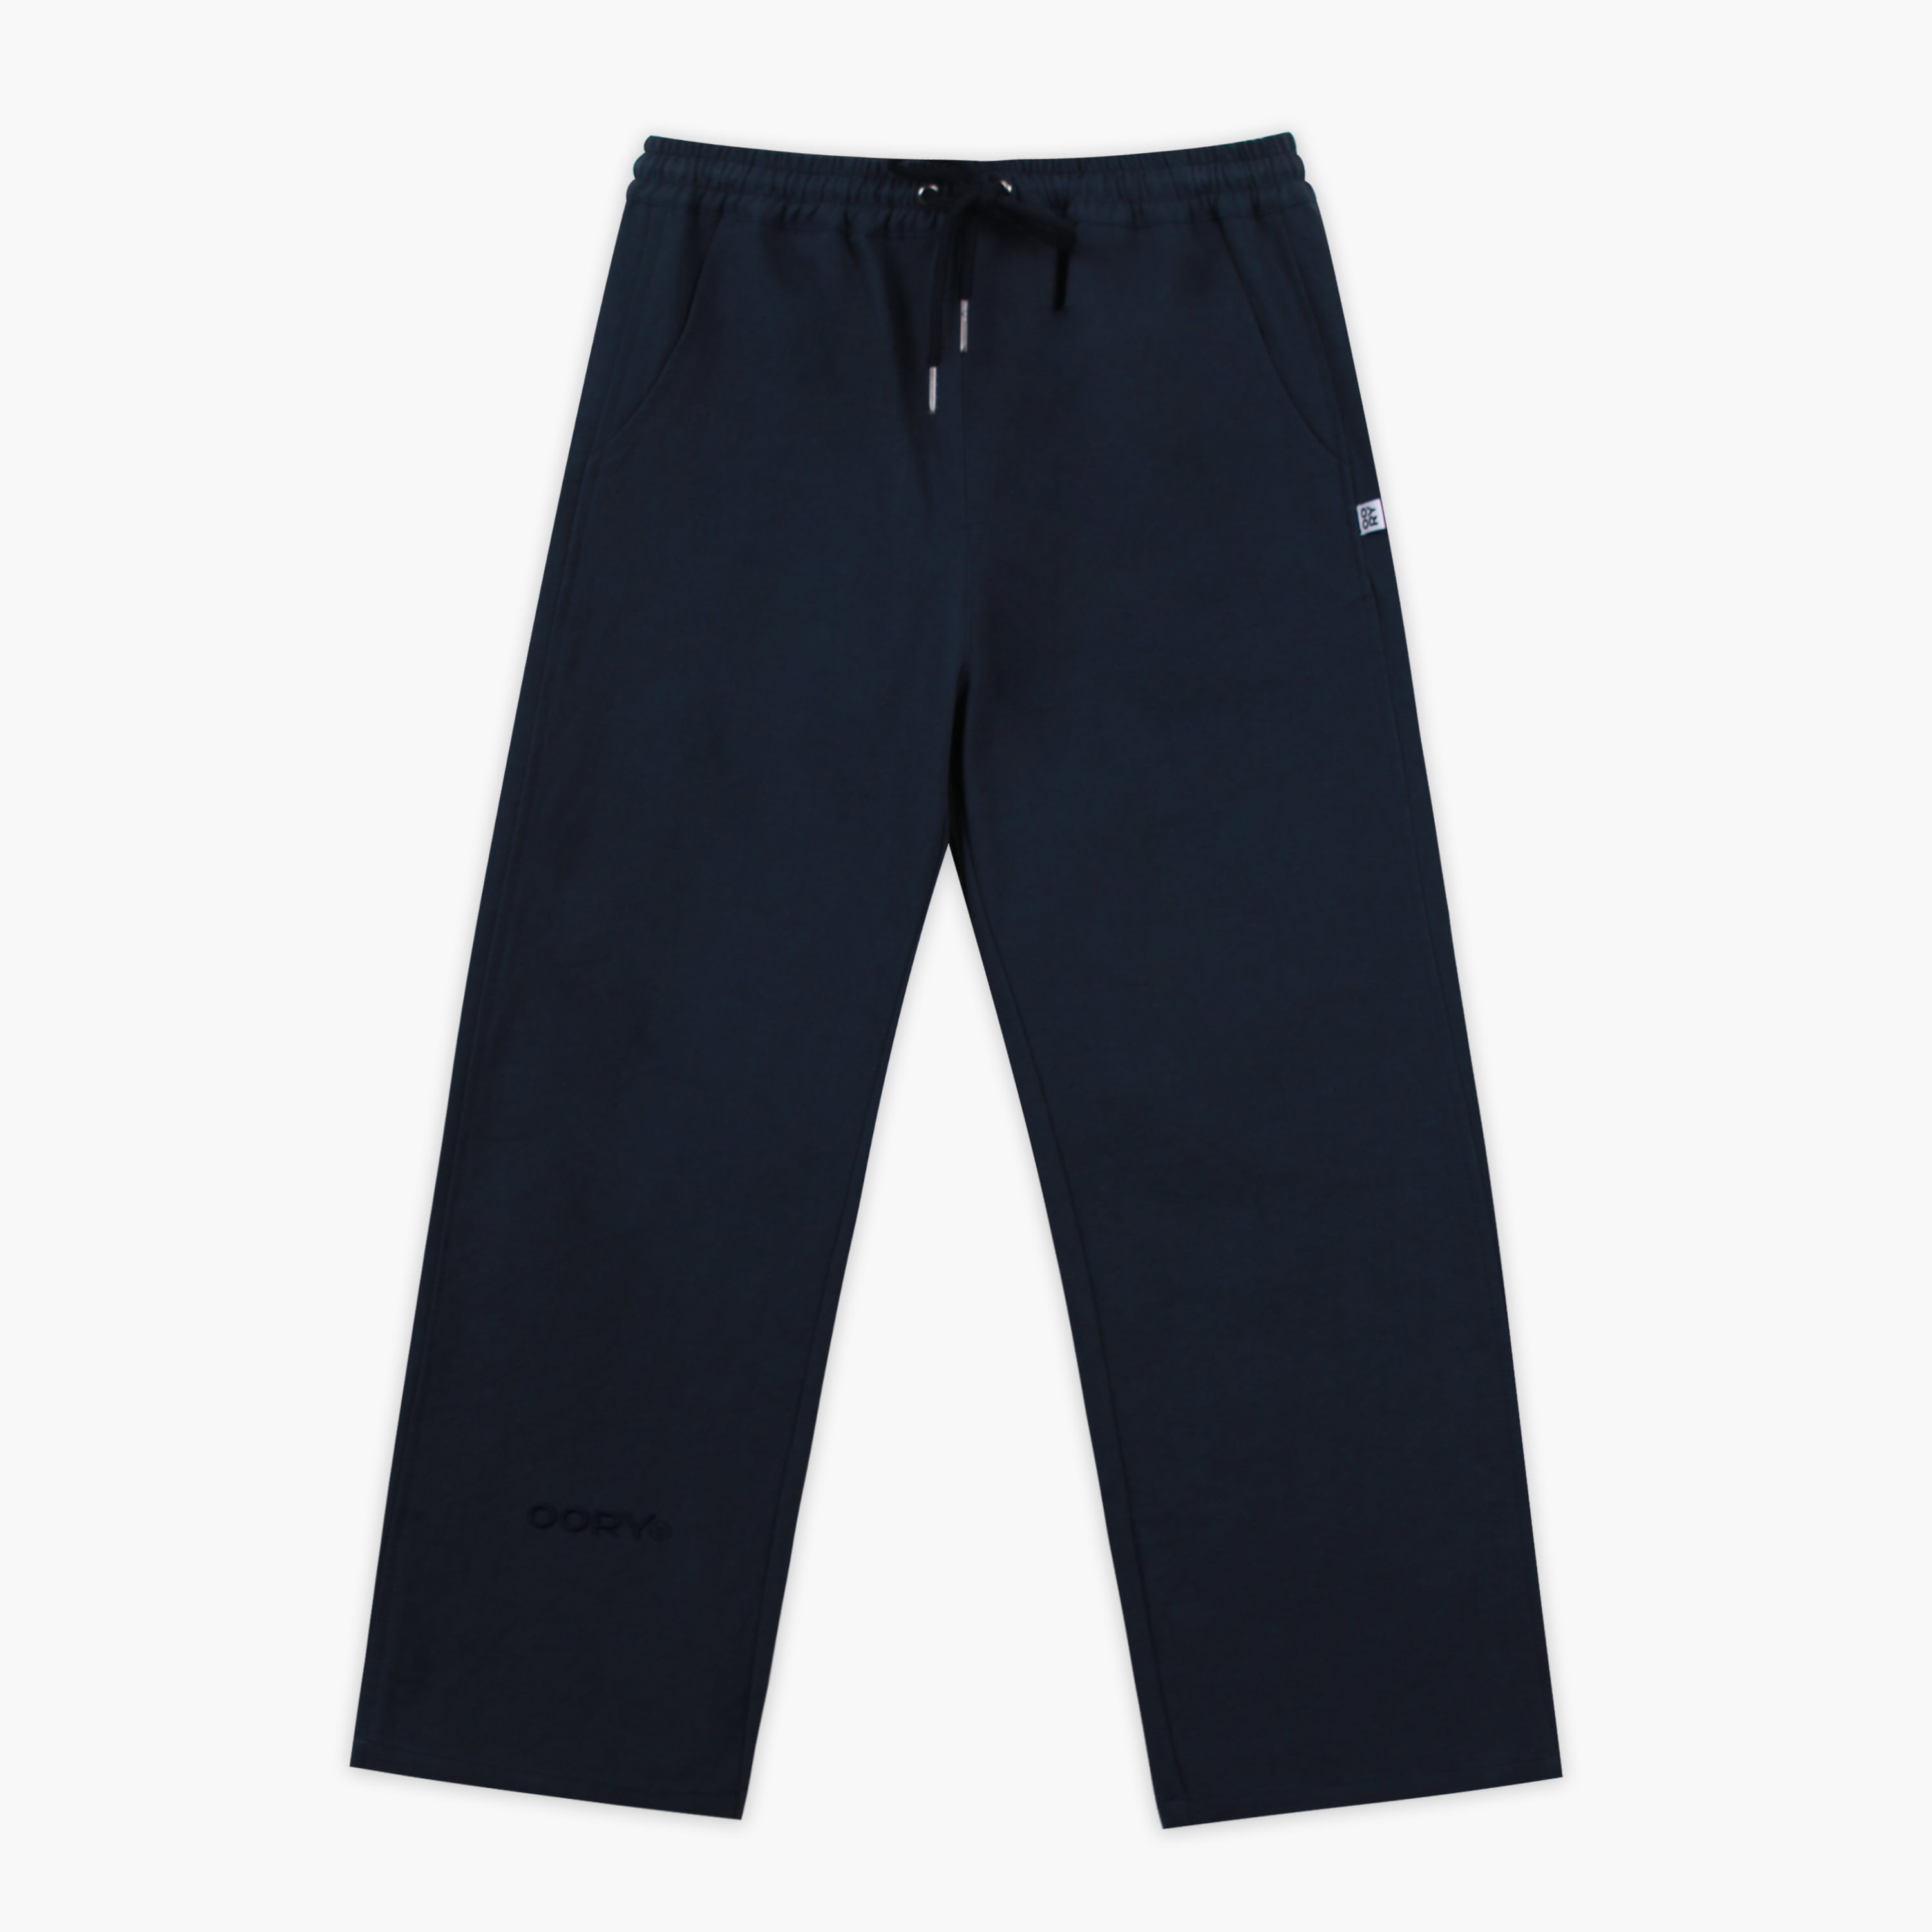 OORY cotton pants - navy